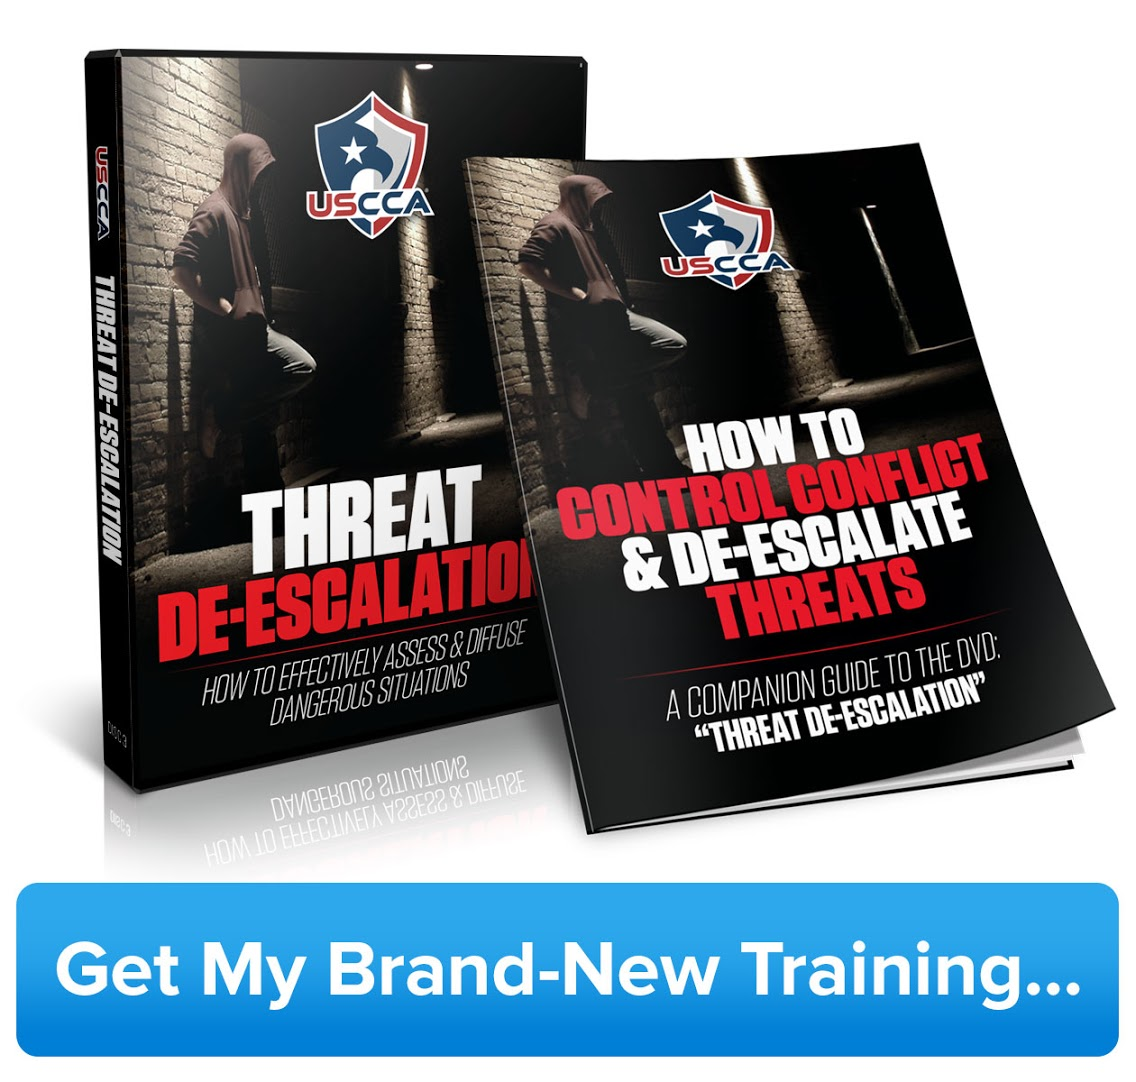 Get Your Brand-New Training Guide...